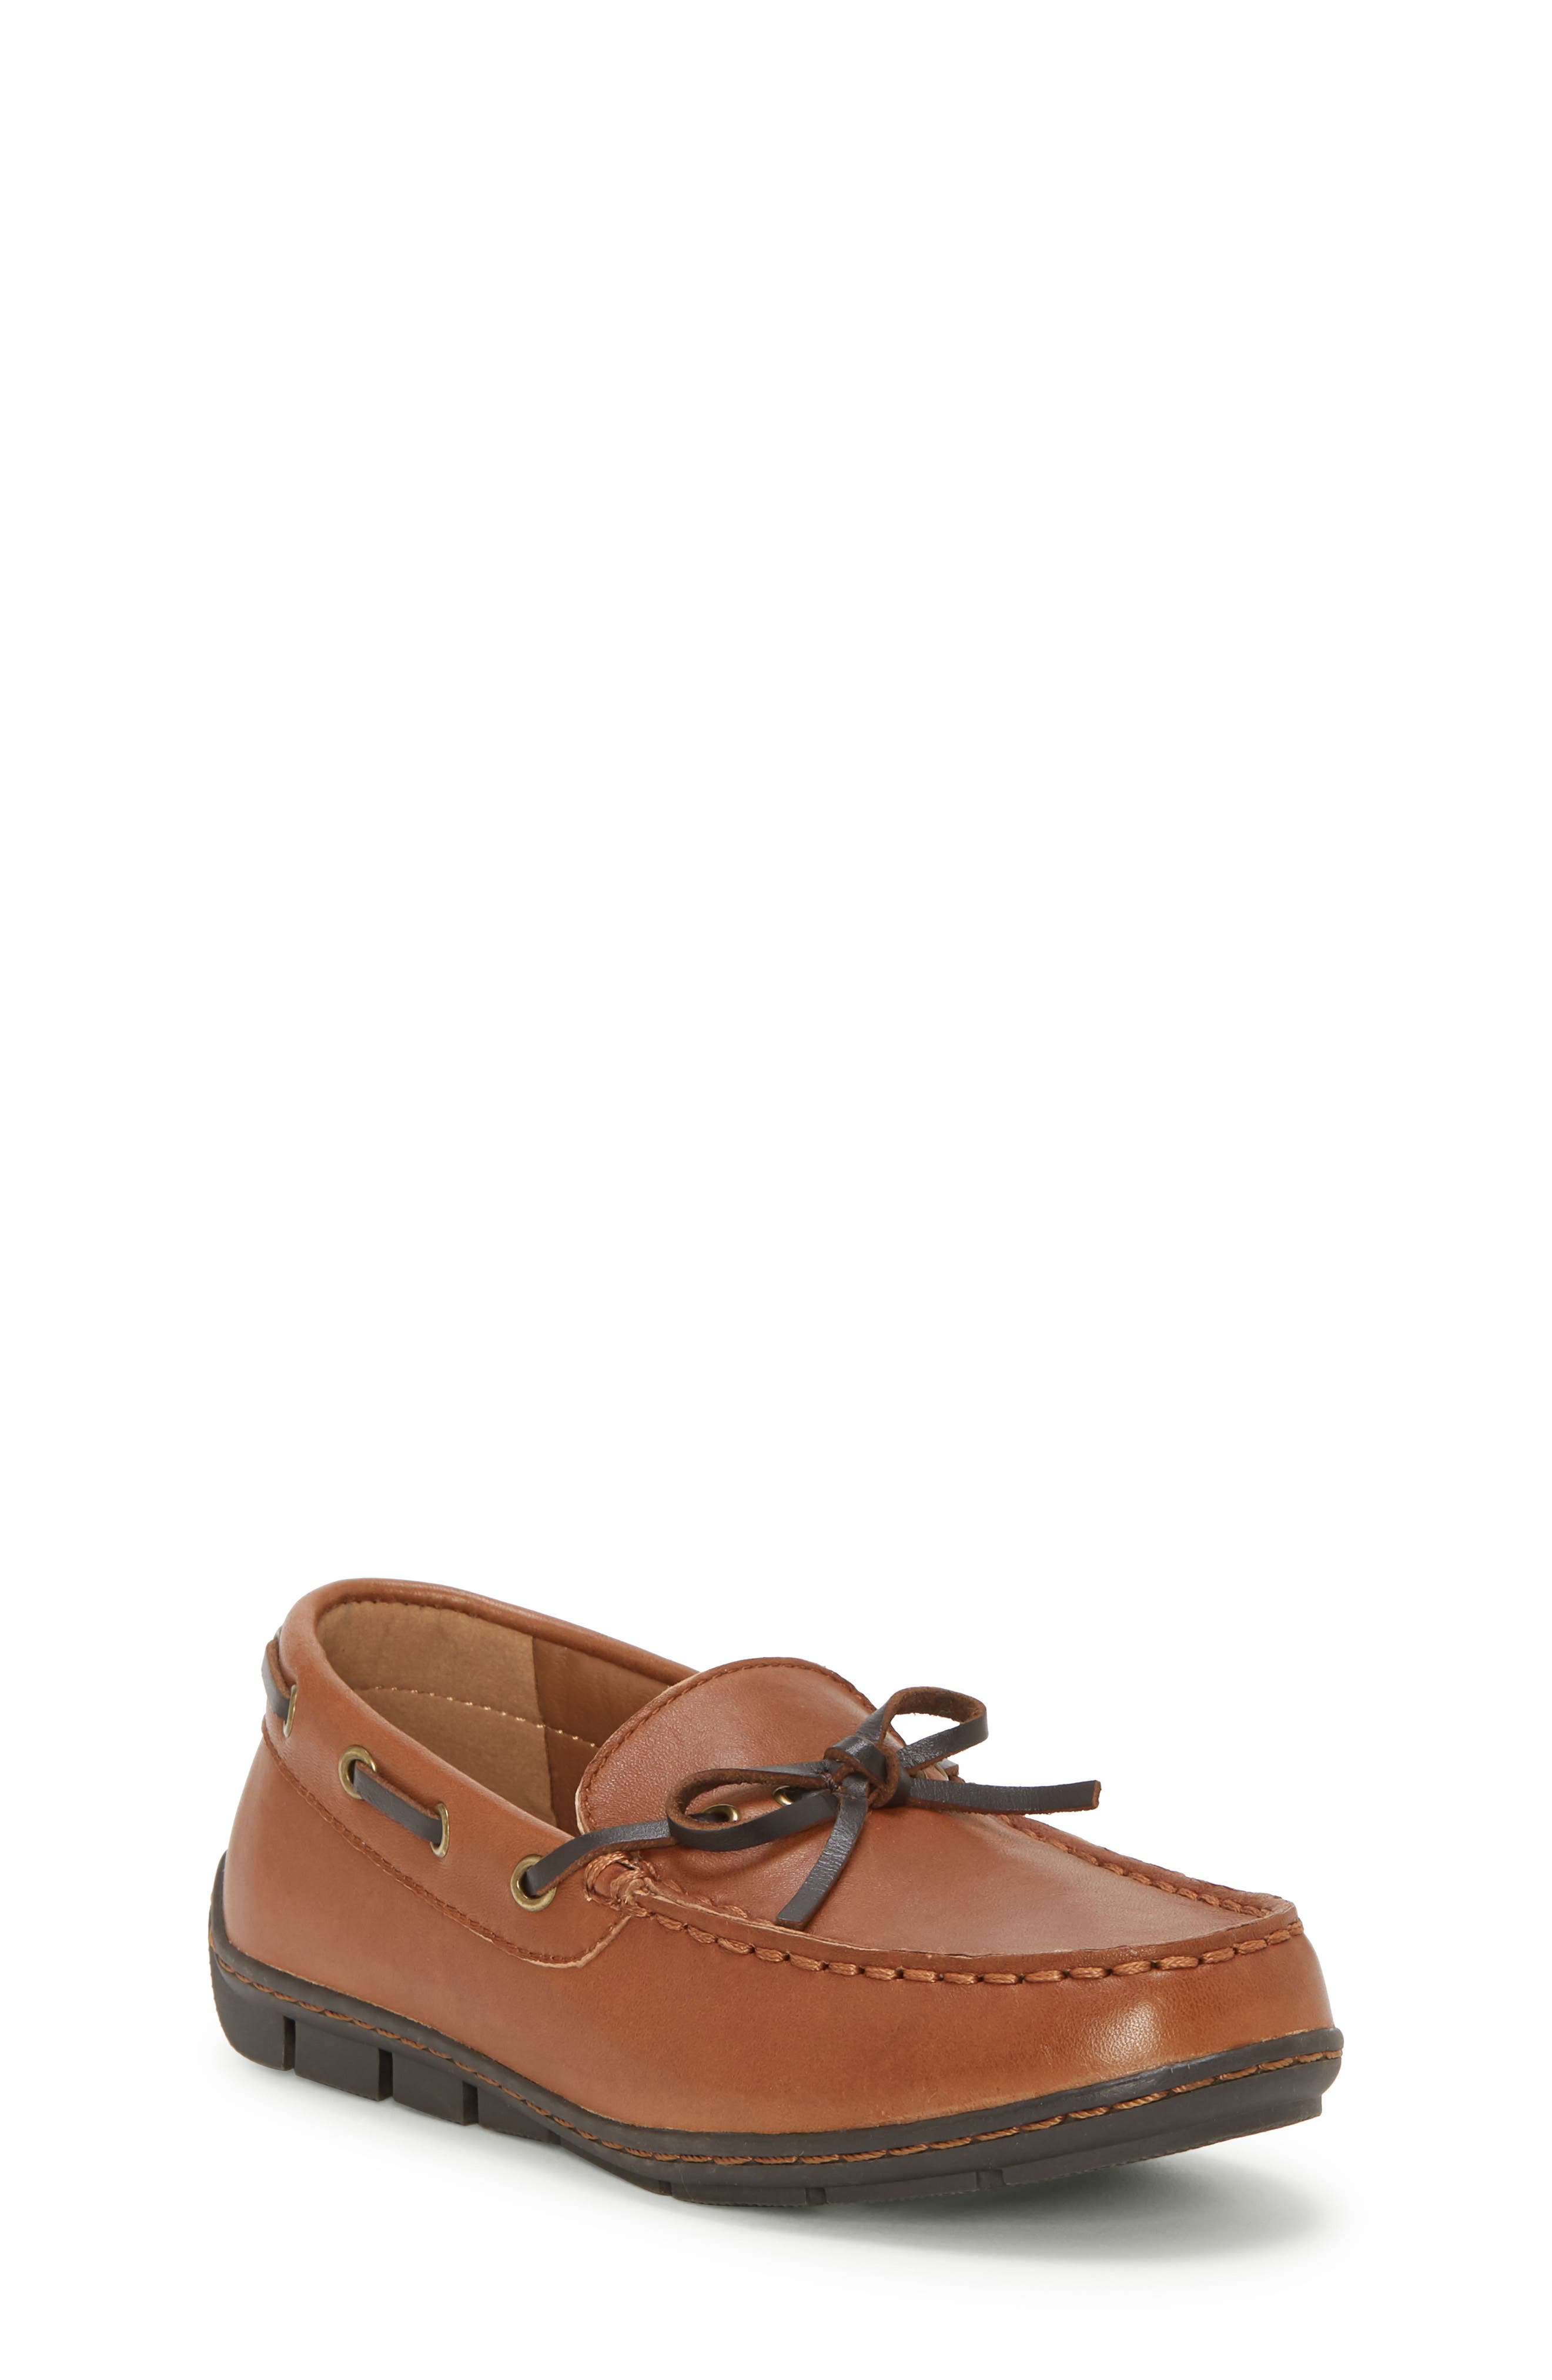 Toddler Boys Vince Camuto Driver Loafer Size 12 M  Brown